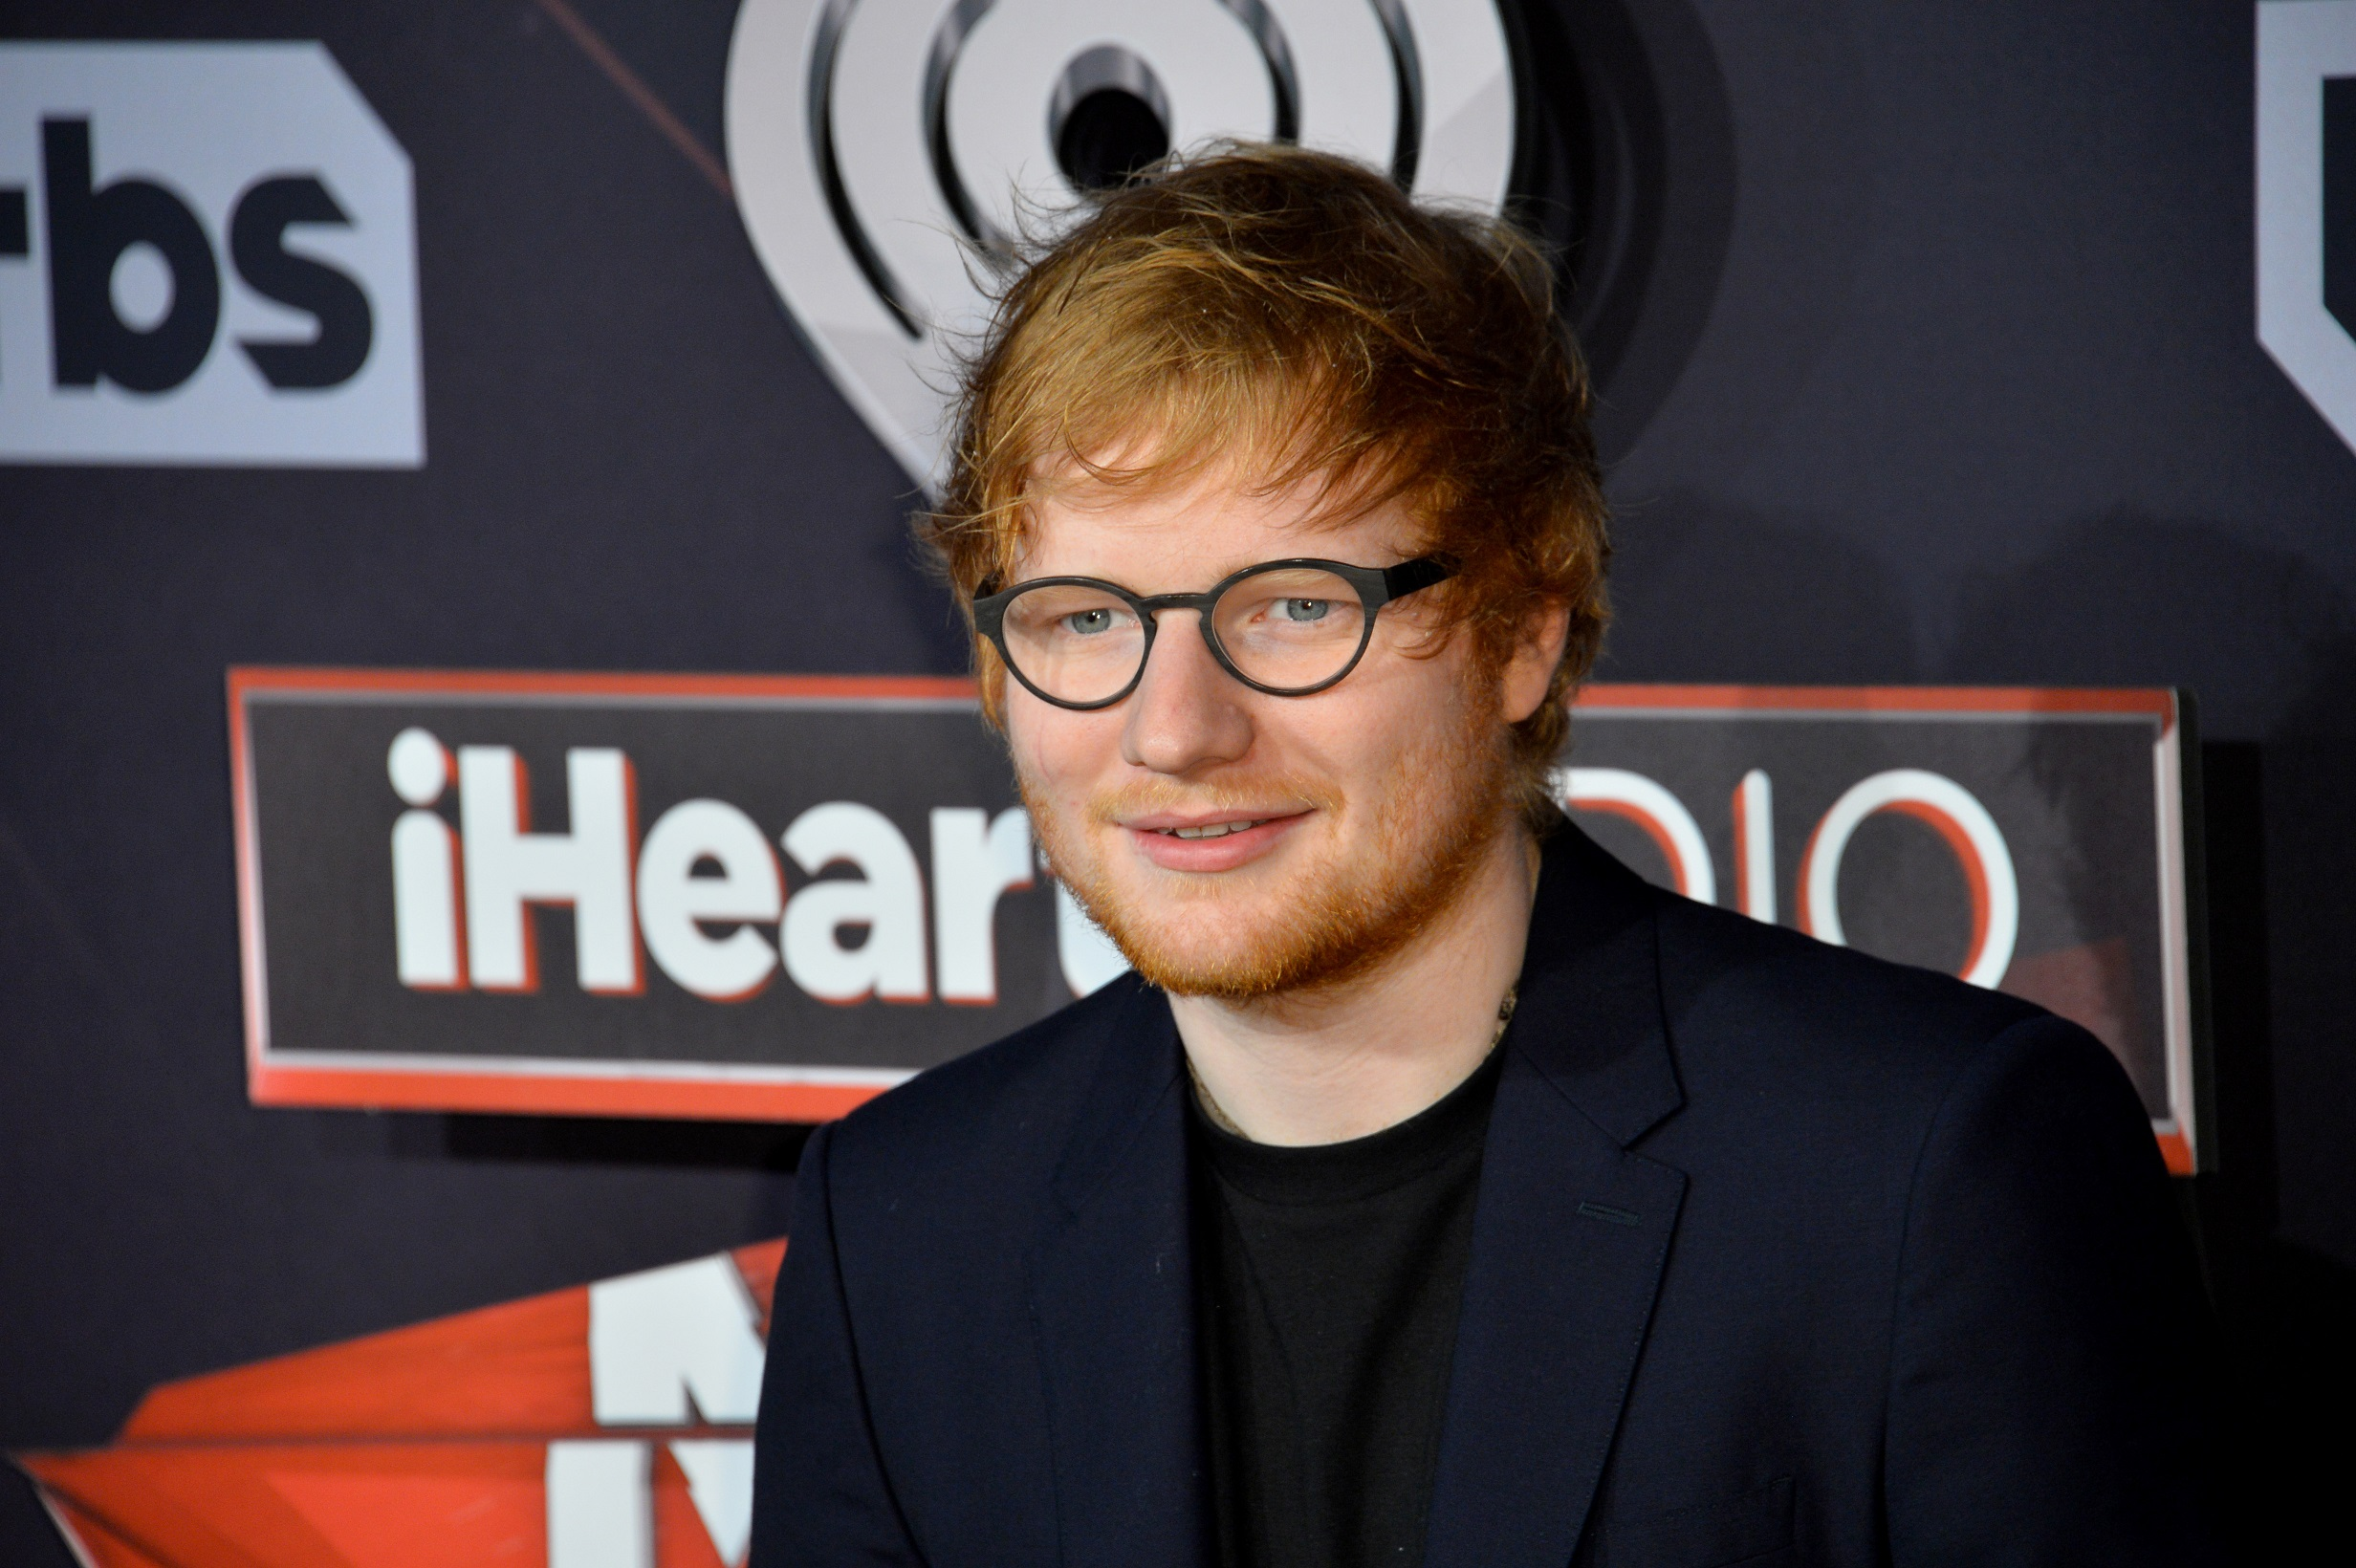 2017 iHeartRadio Music Awards, Los Angeles 05 Mar 2017 Ed Sheeran